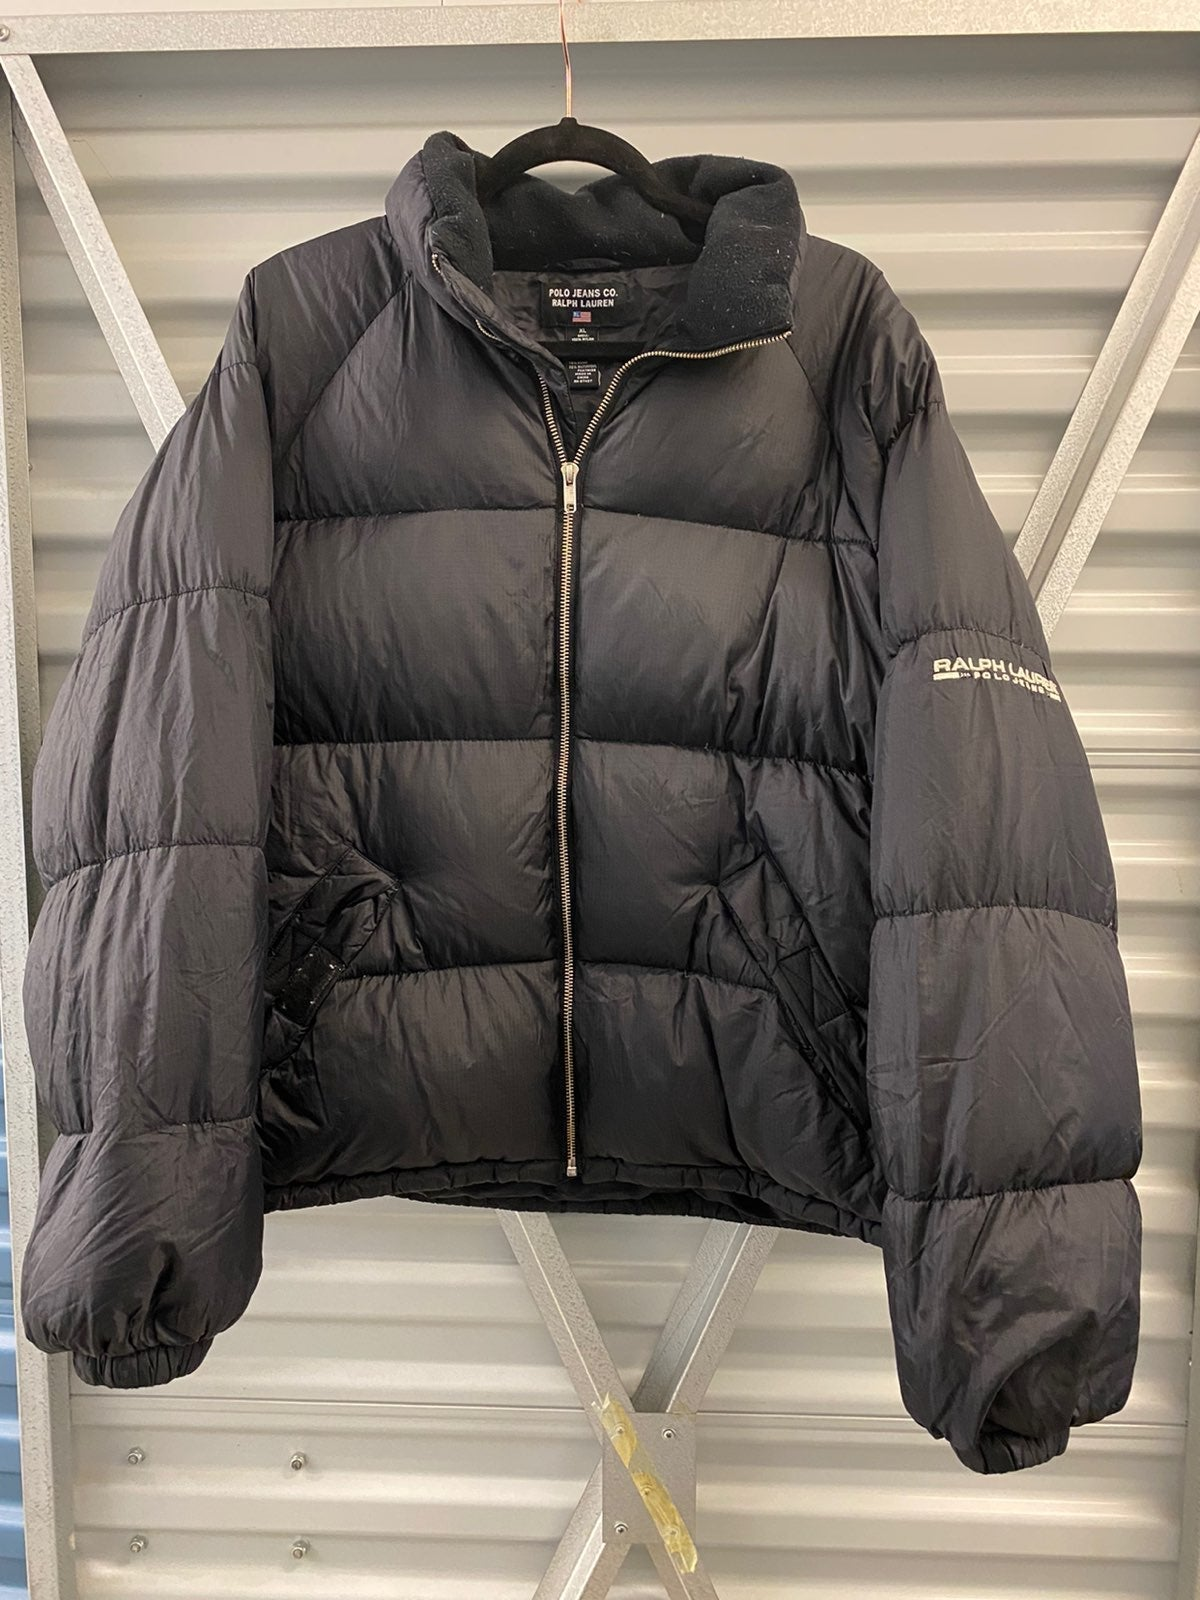 Vintage puffer polo